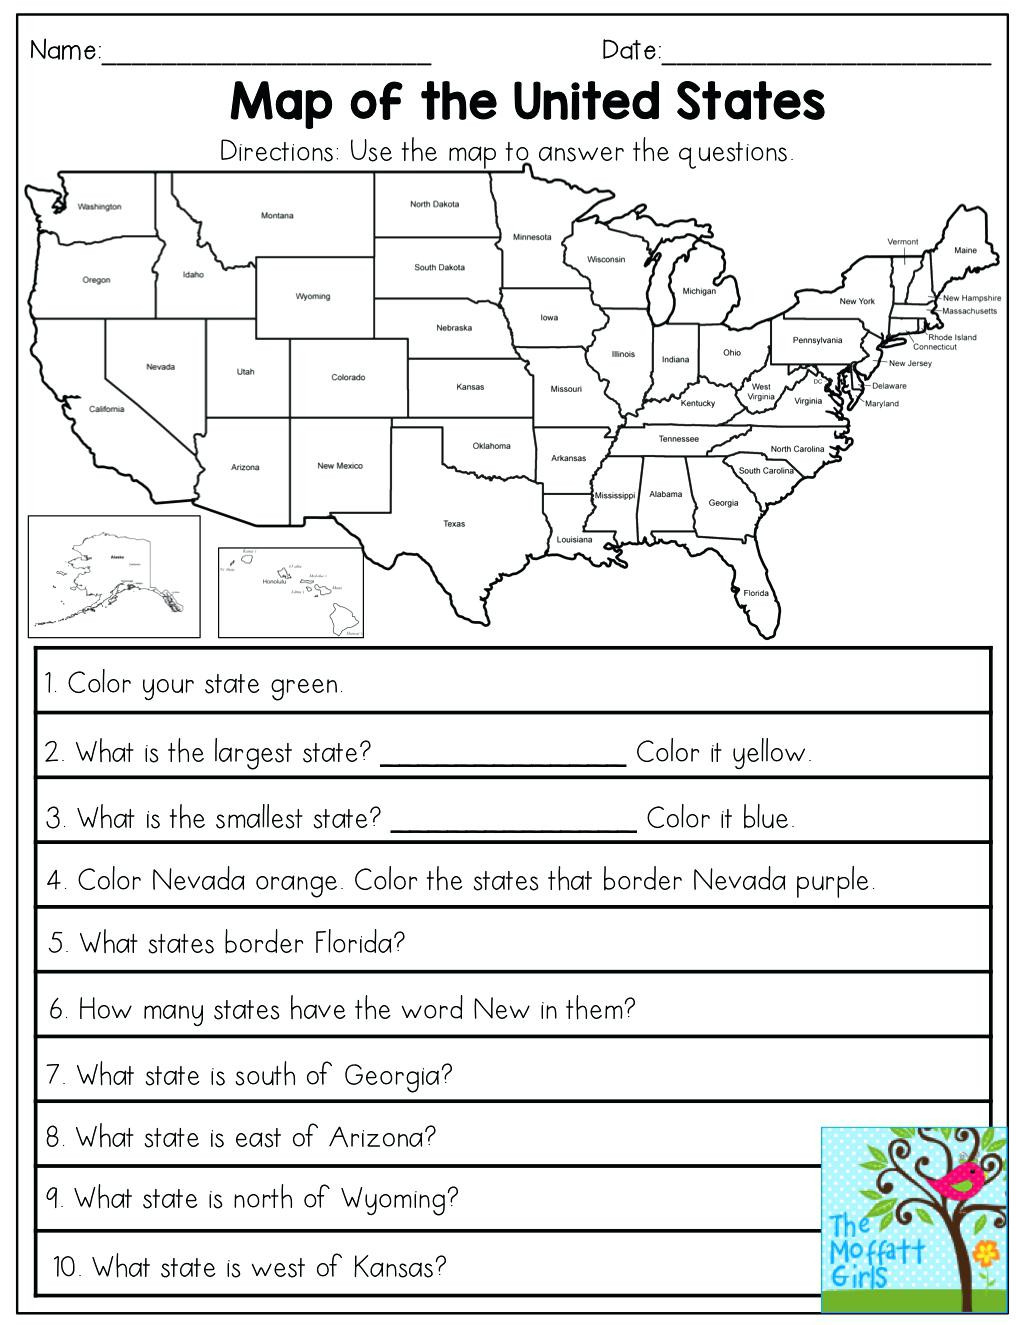 Map Skills Worksheets 3rd Grade Map Skills Worksheets for Print Map Skills Worksheets